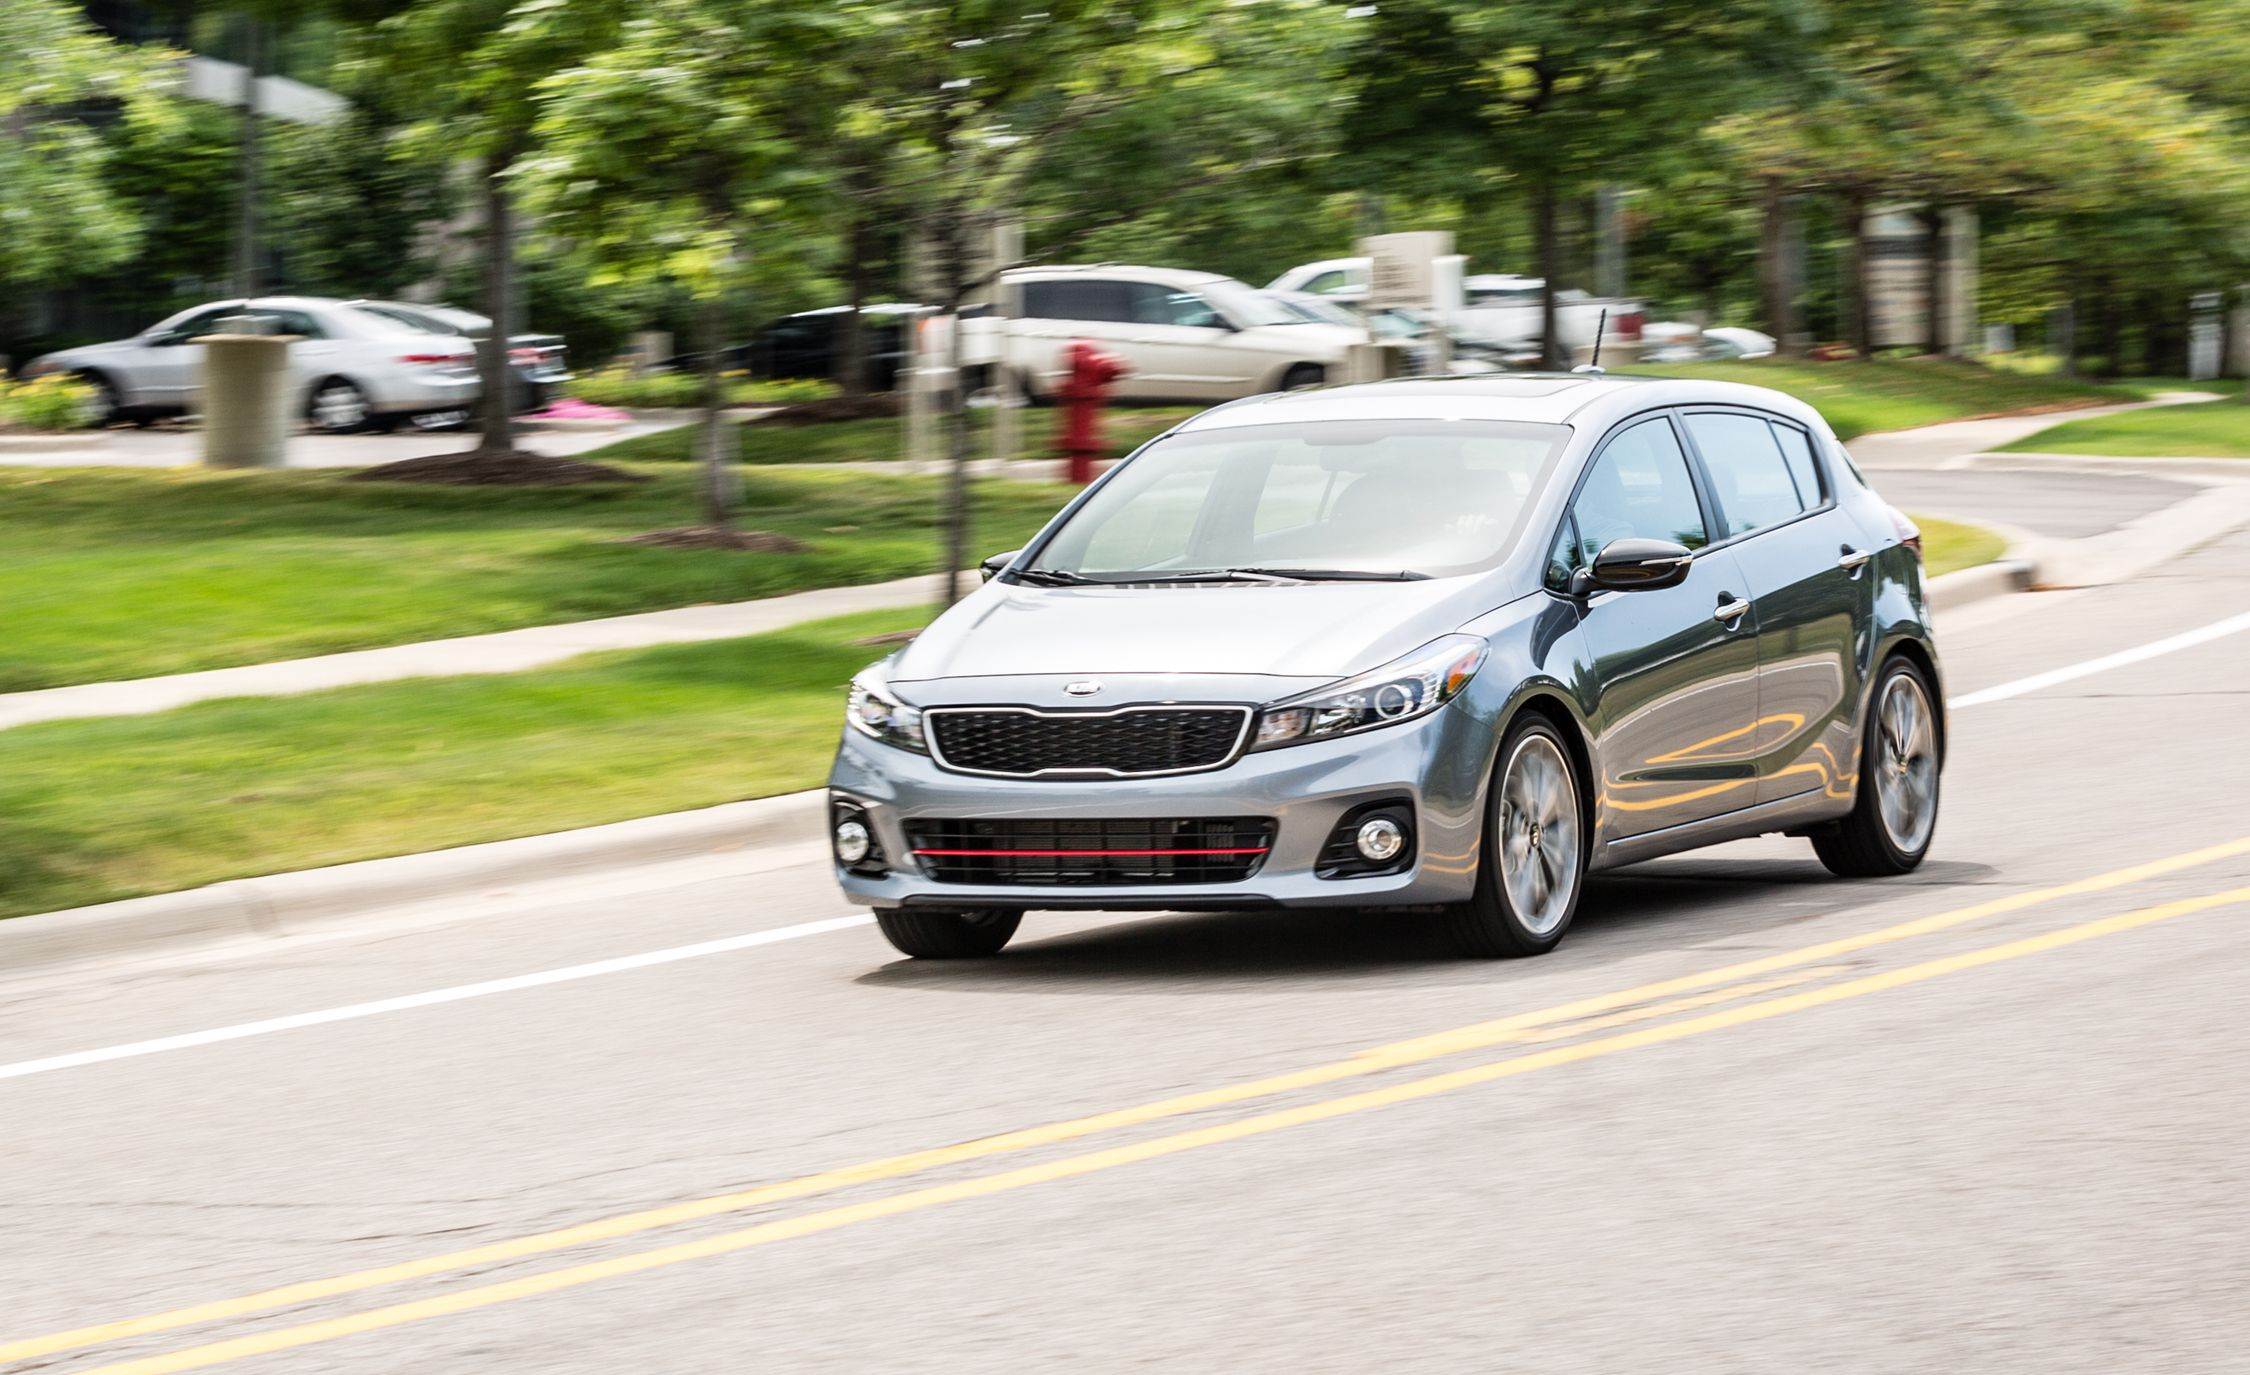 2017 kia forte5 sx turbo manual test review car and driver. Black Bedroom Furniture Sets. Home Design Ideas